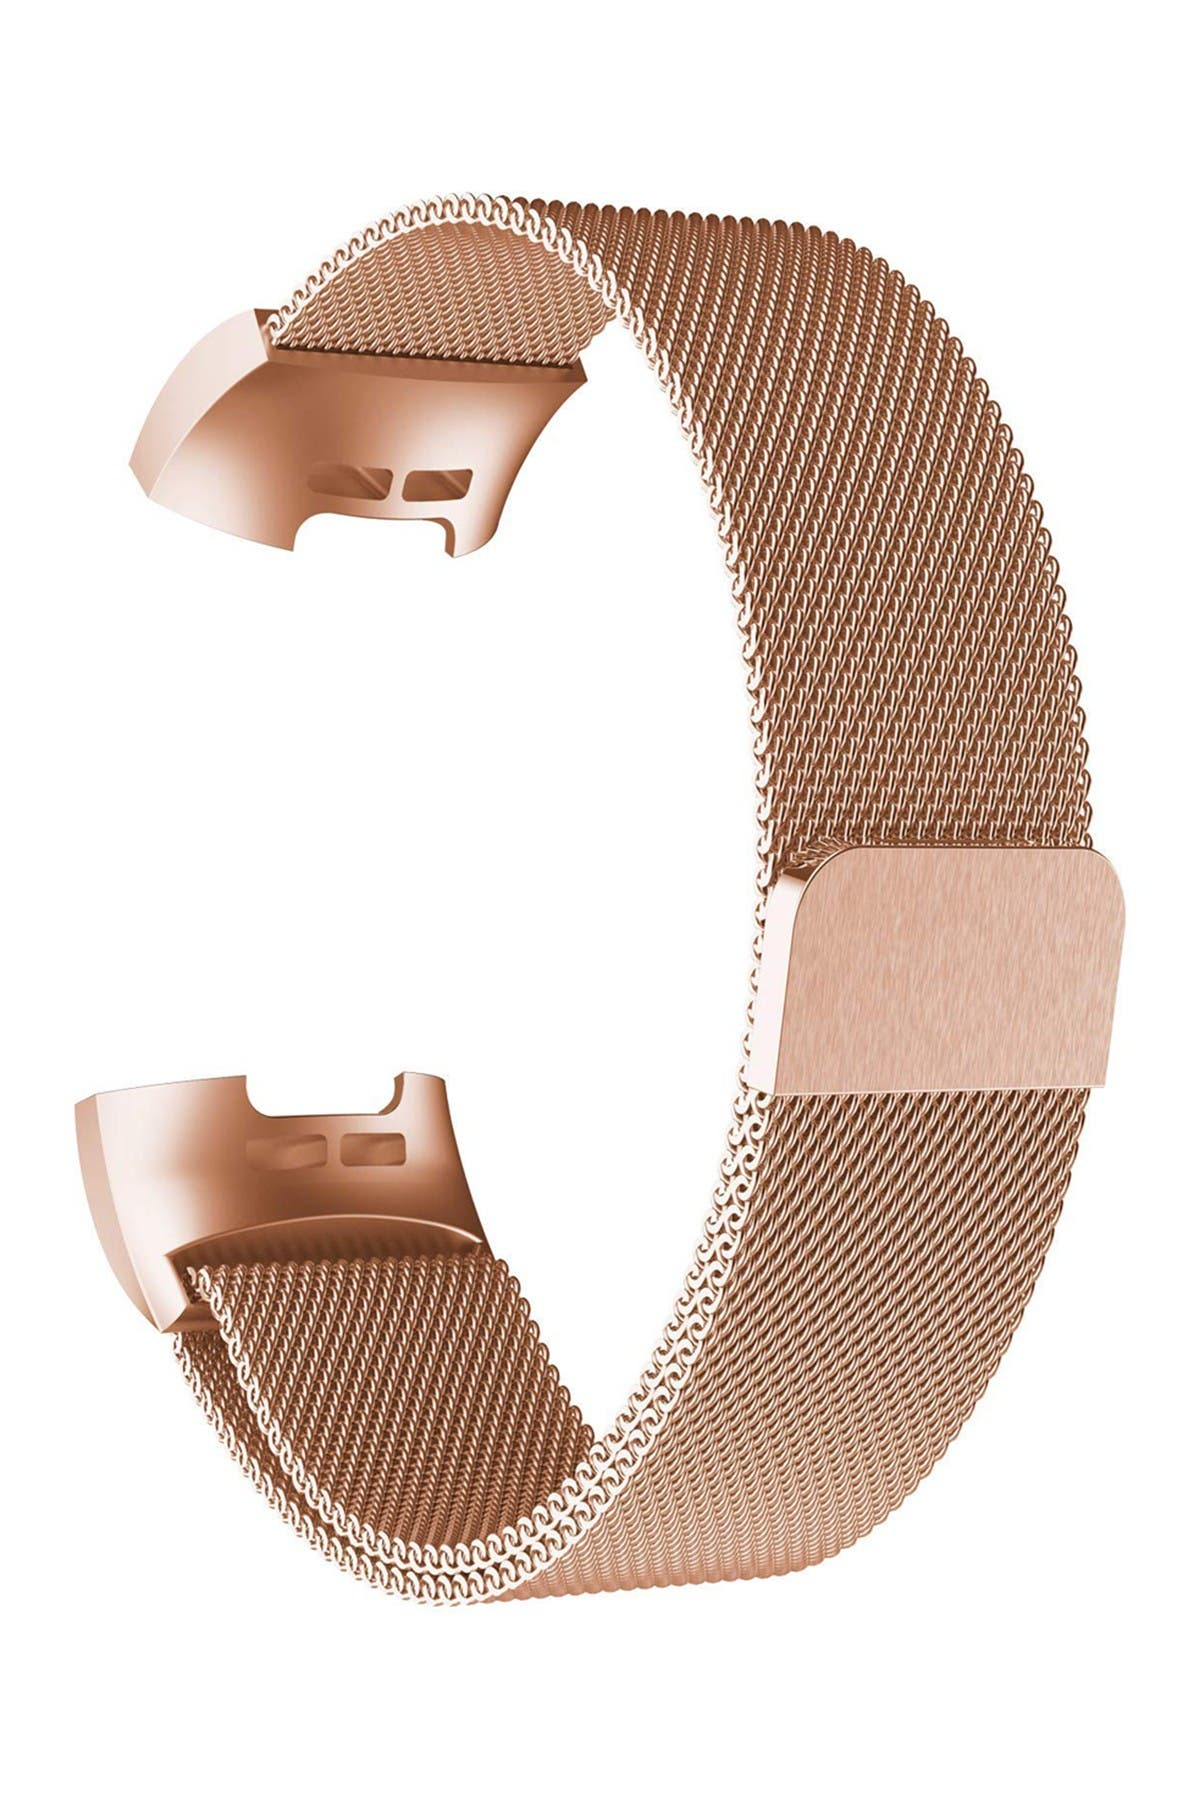 Image of POSH TECH Small Stainless Steel Band for Fitbit Charge 3 - Rose Gold